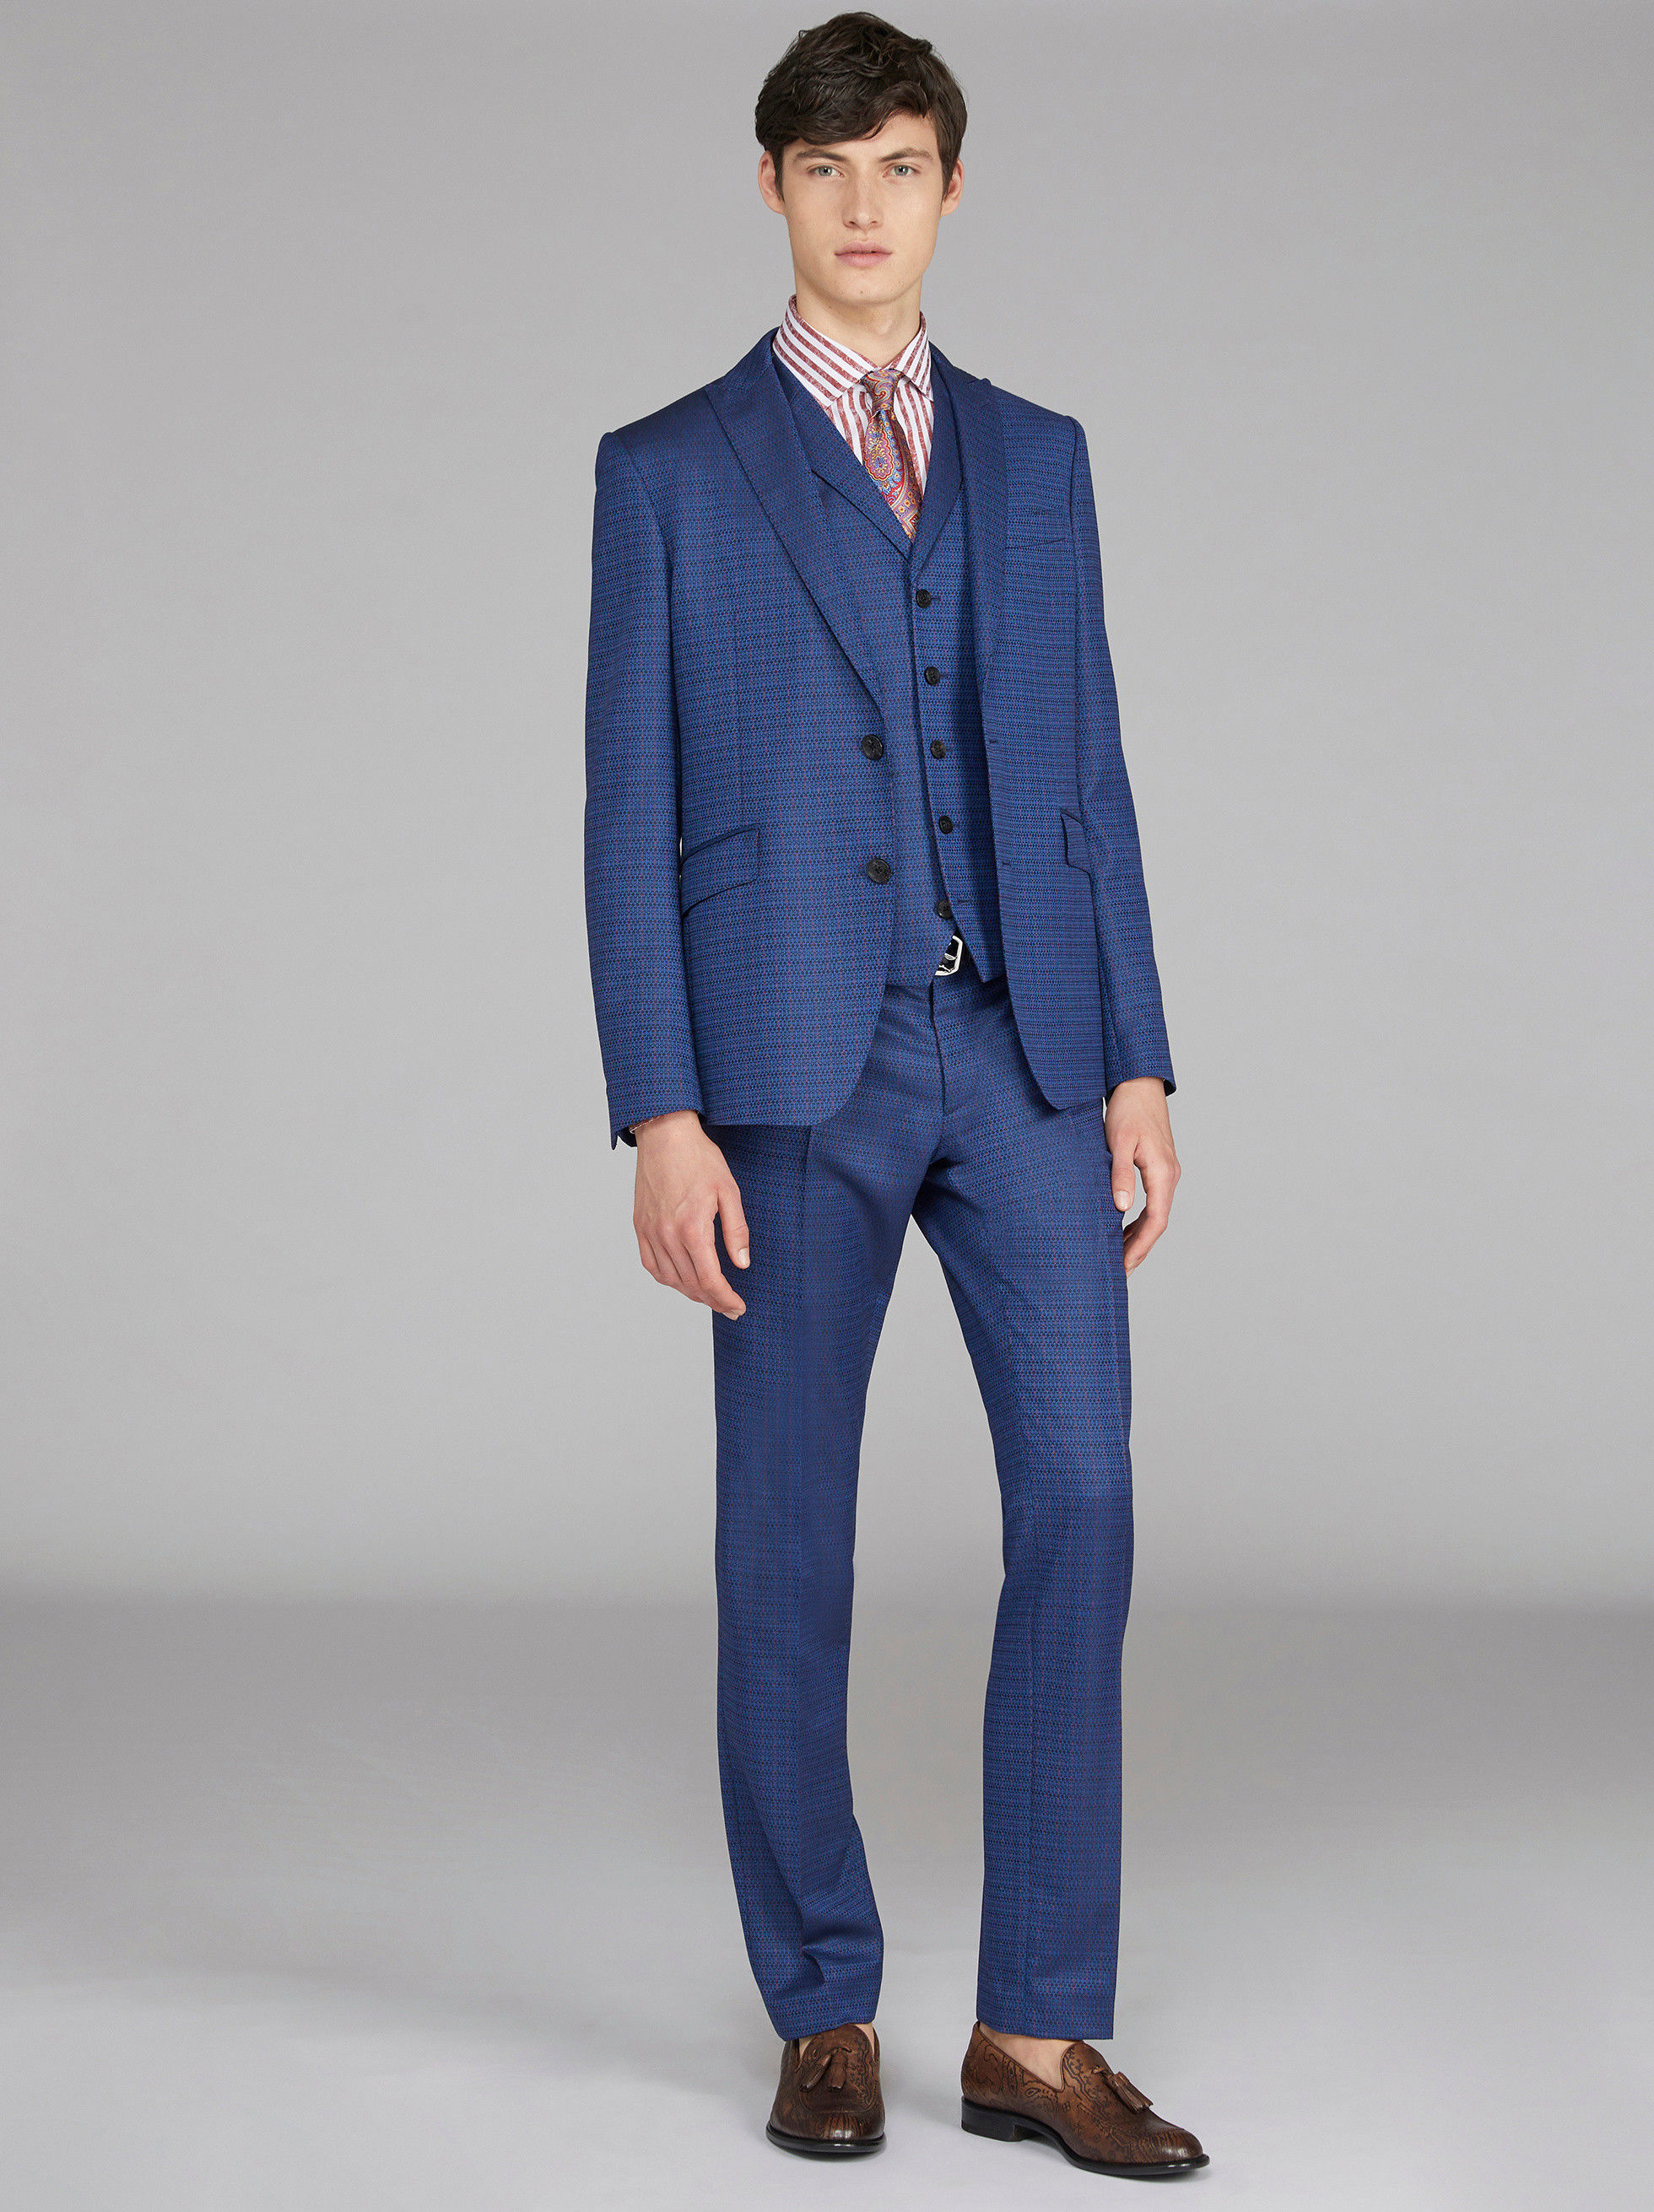 JACQUARD THREE PIECE SUIT WITH LOGO